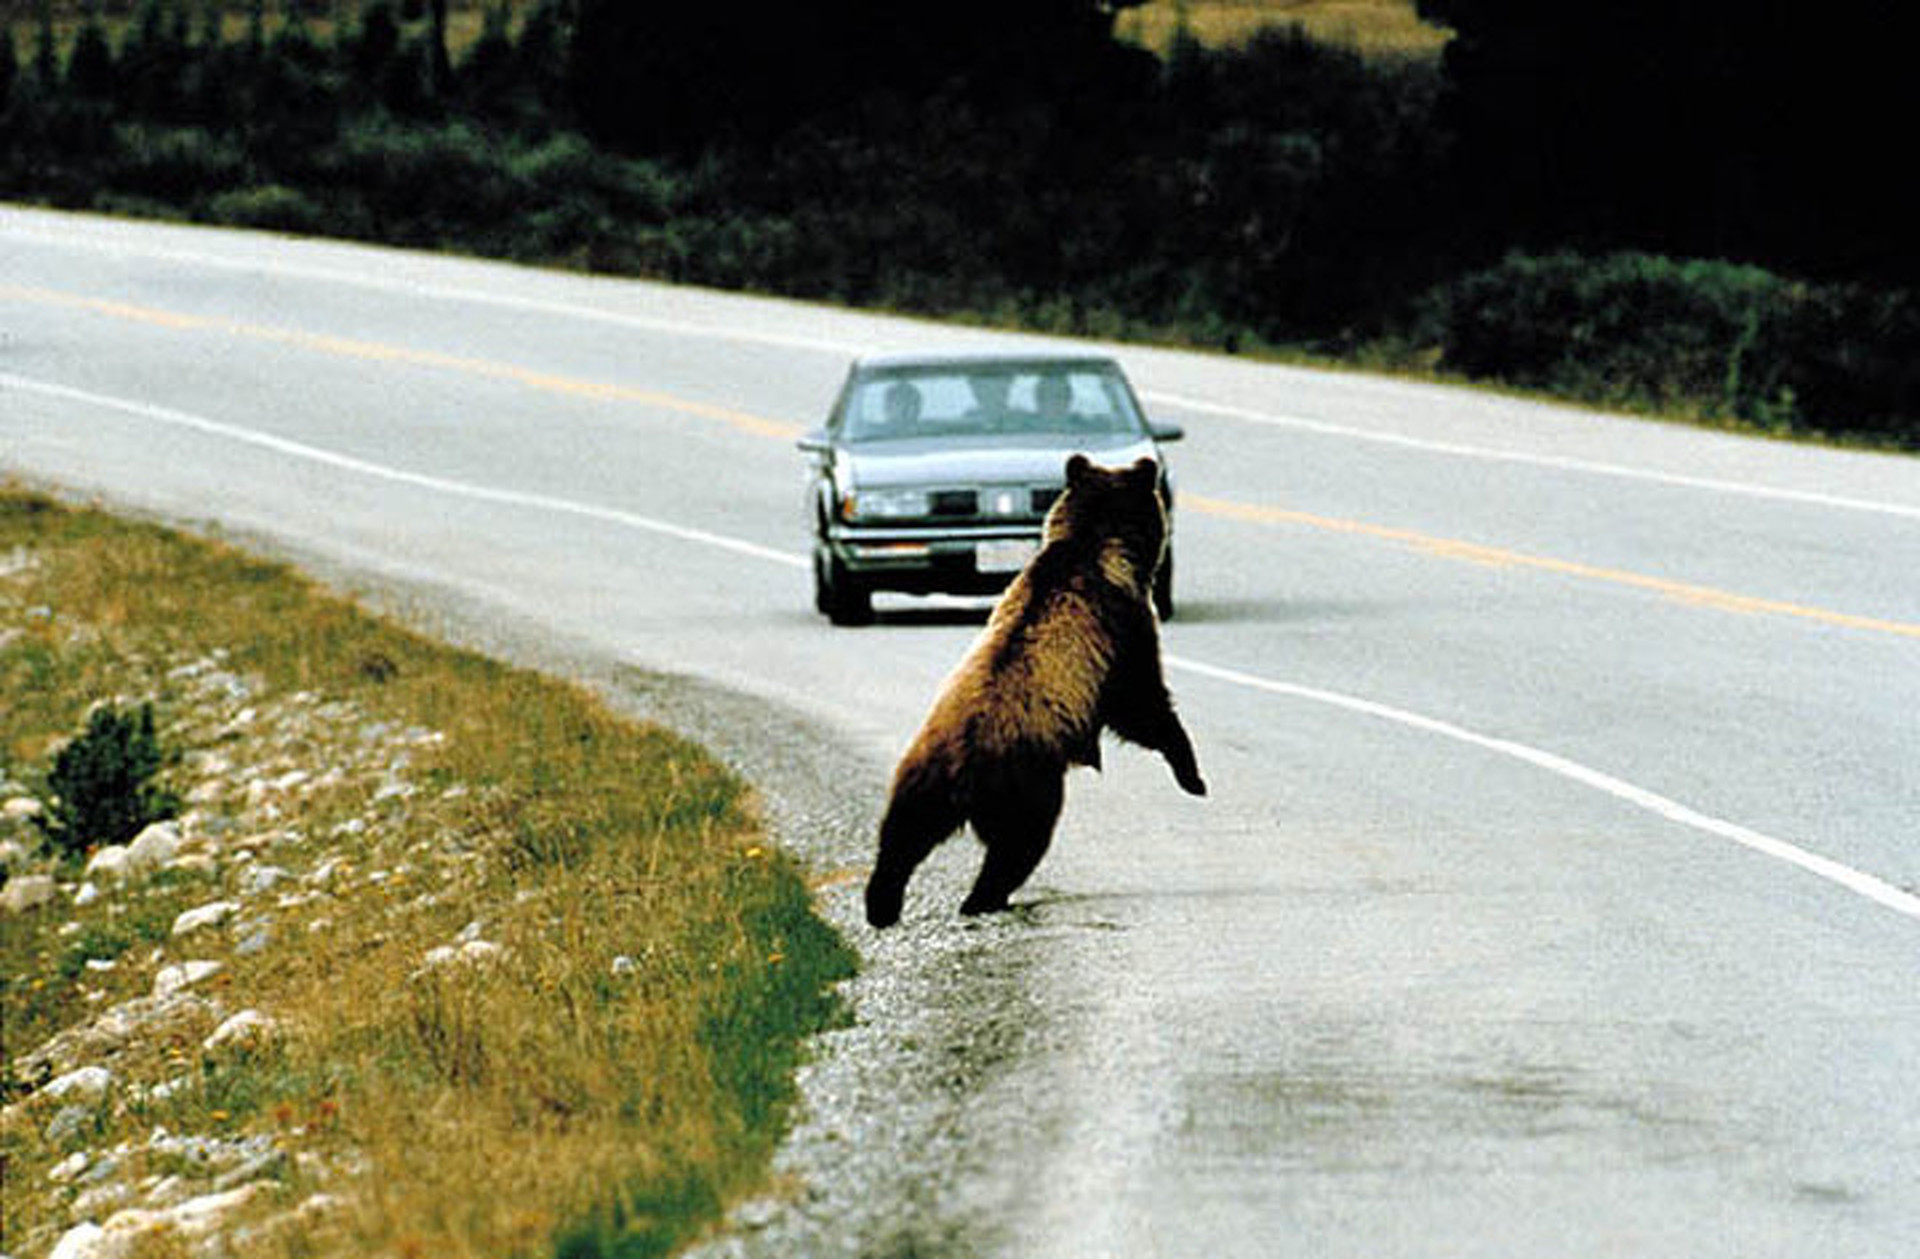 Roadkill for Dinner: Michigan Bill Would Make it Legal to Eat Dead Roadside Animals